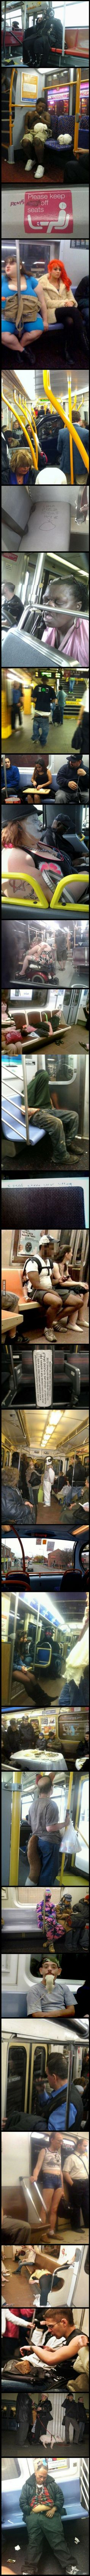 S**t you see on public transport never gets boring